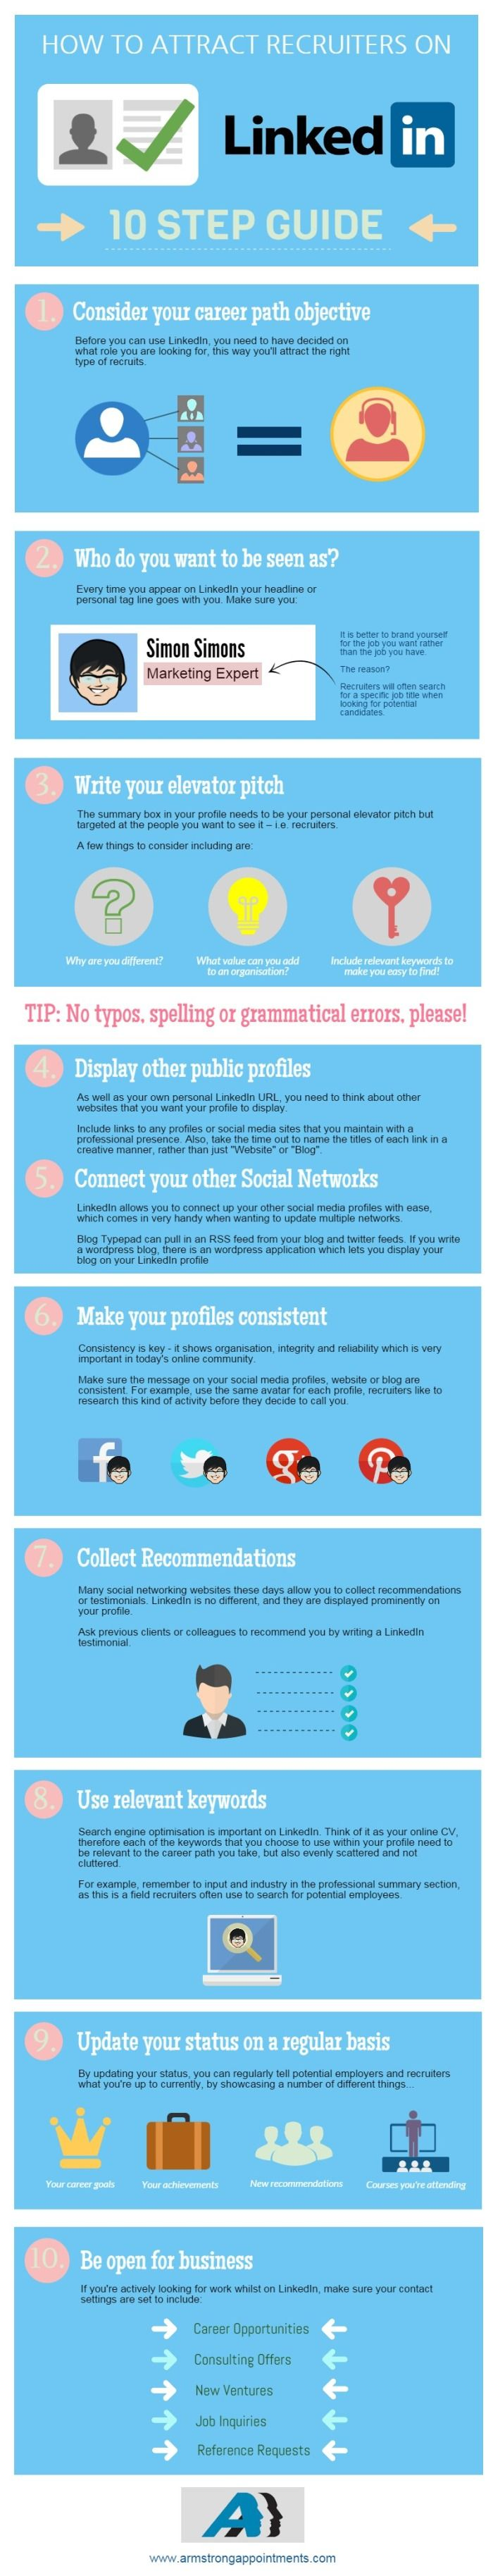 10 Step Guide: How To Attract Recruiters On LinkedIn